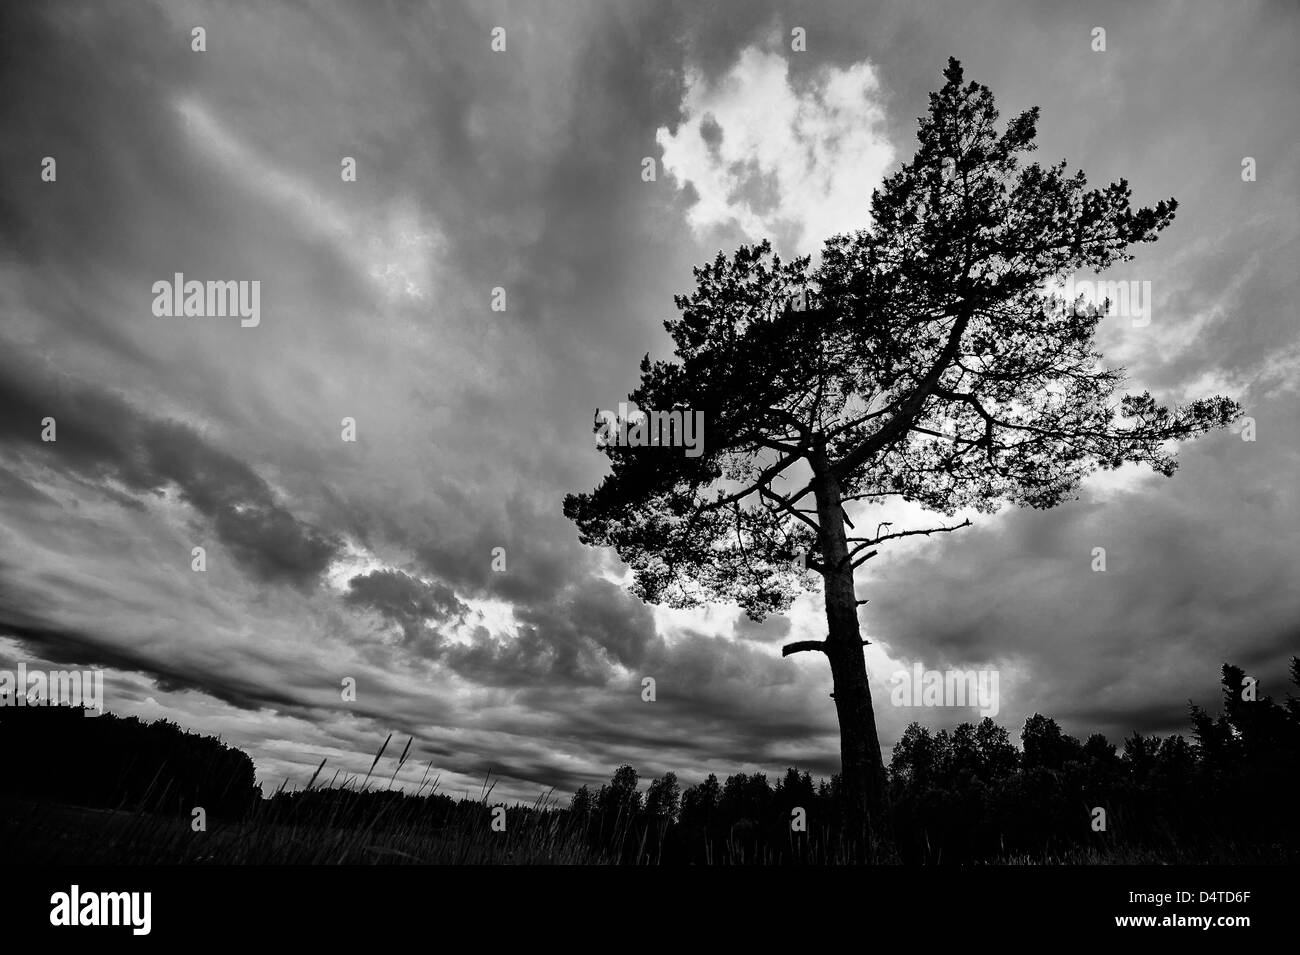 Stormy, ominous sky with a tree in the foreground - Stock Image